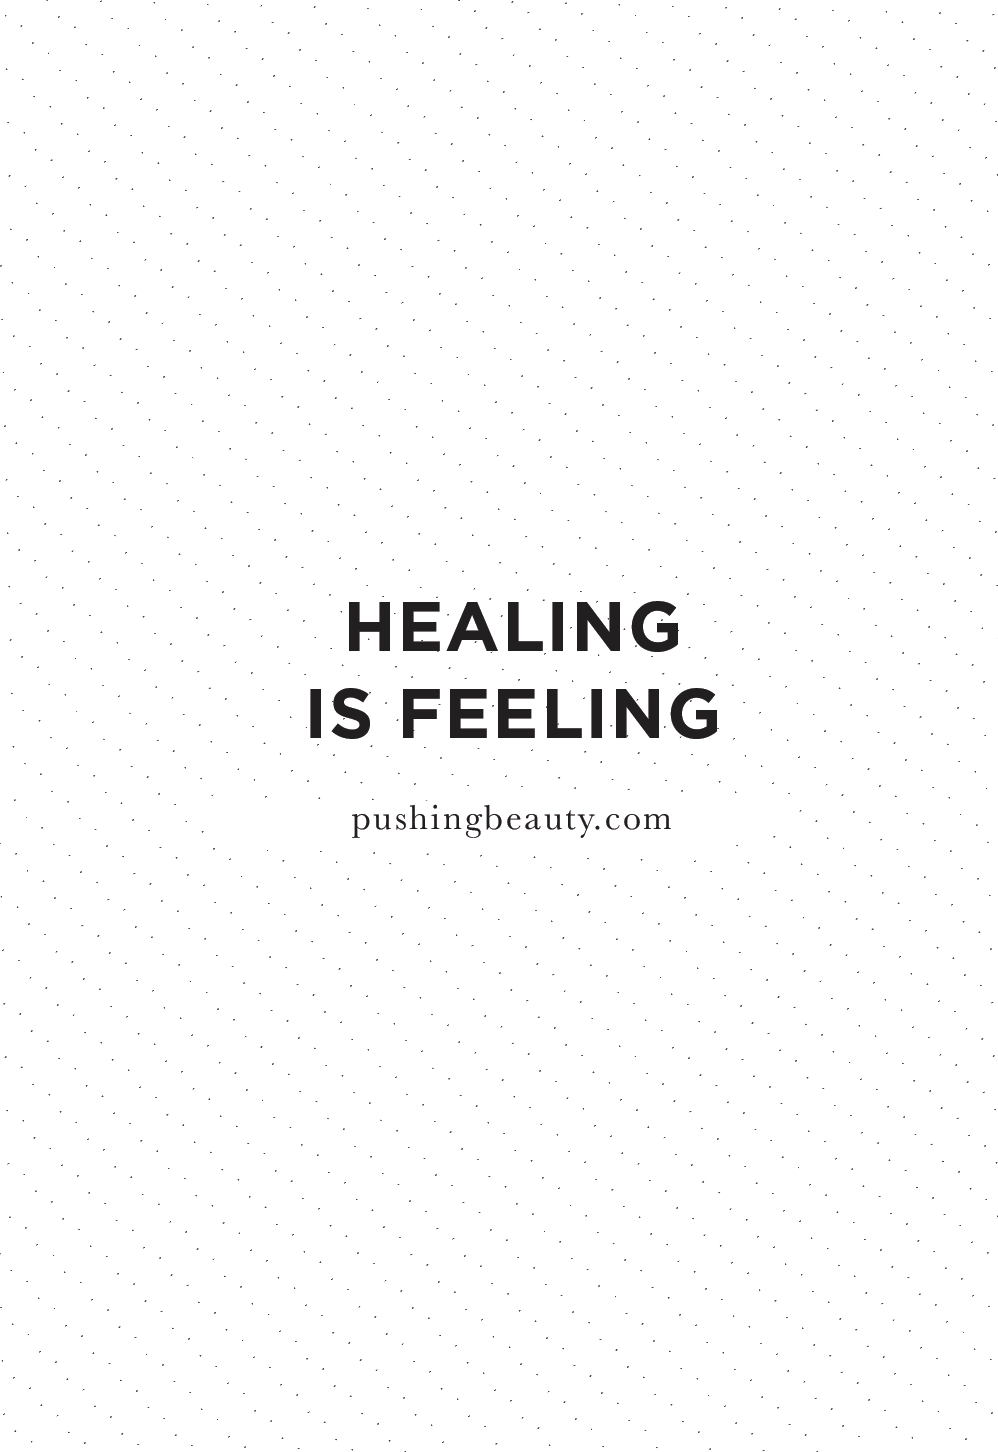 Healing affirmation | Pushing Beauty